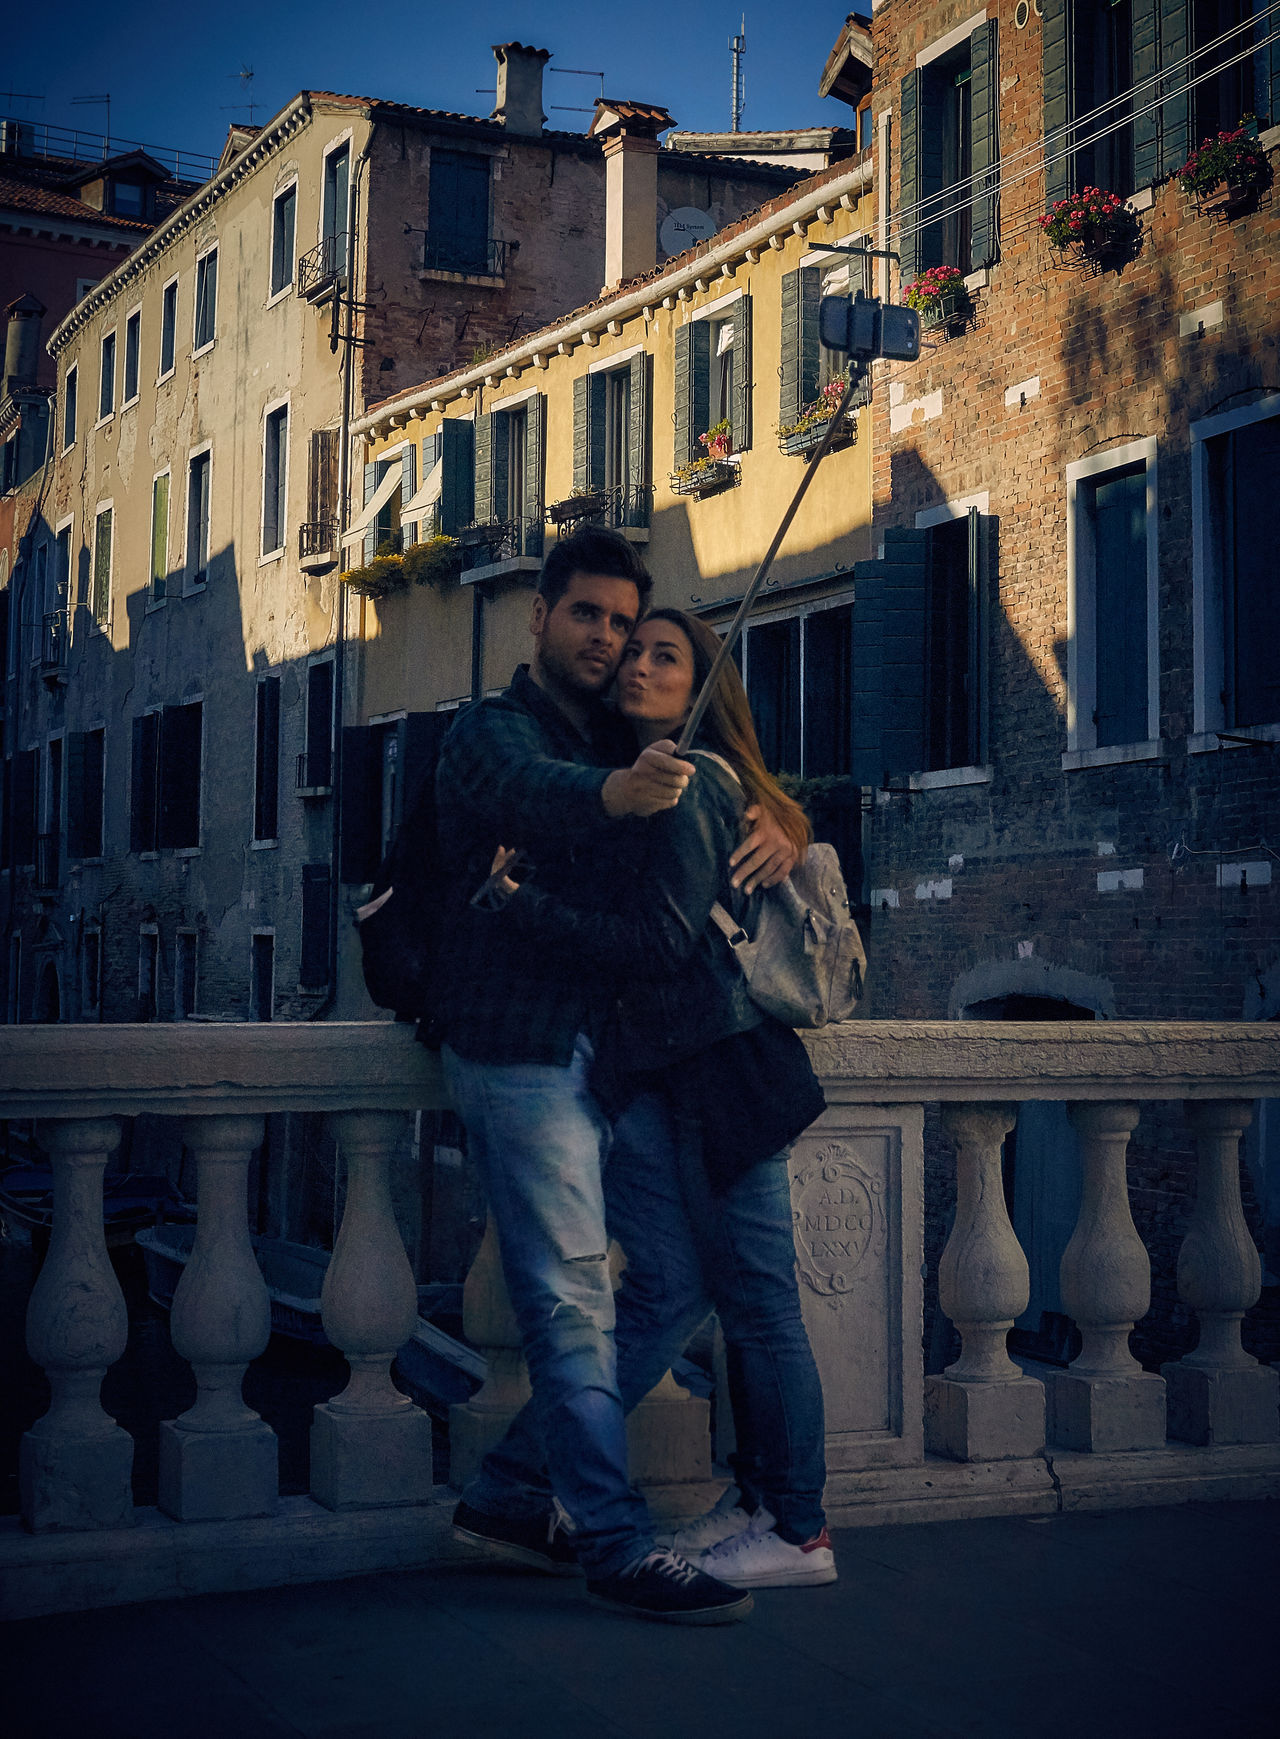 Modern Love Architecture Building Built Structure Casual Clothing City City Life Couple Day Front View Happiness Honeymoon Hug Leisure Activity Lifestyles Outdoors Person Portrait Selfie Stick Smiling Standing Tech Technology Technology Everywhere The Street Photographer - 2016 EyeEm Awards Toothy Smile